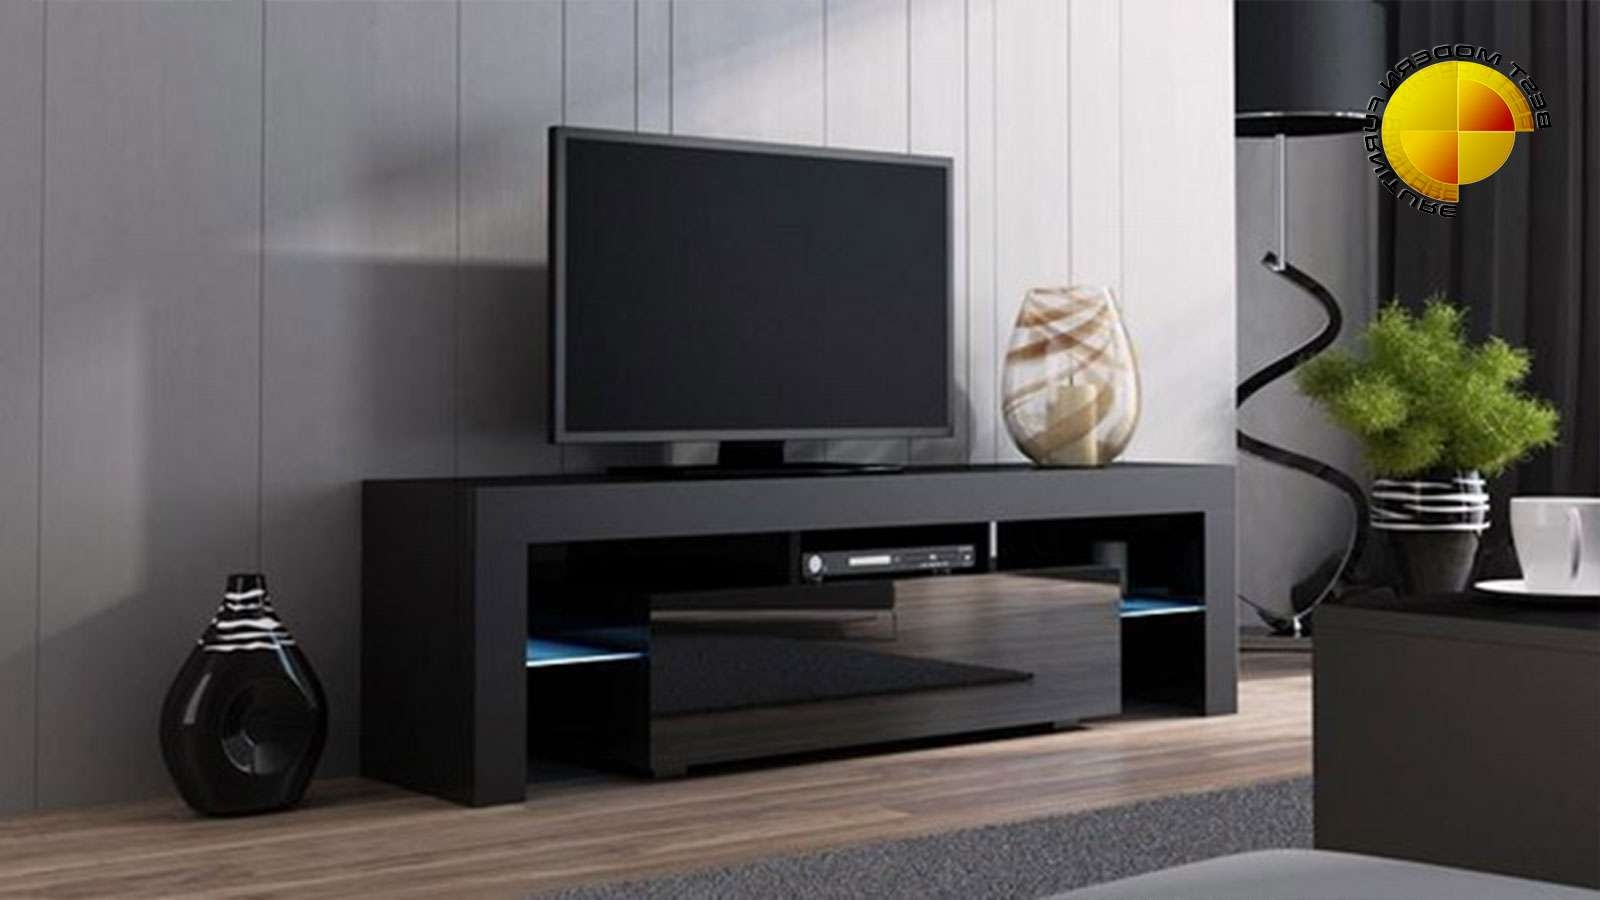 Modern Tv Stand 160Cm High Gloss Cabinet Rgb Led Lights Black Unit Intended For Modern Tv Stands (View 11 of 15)